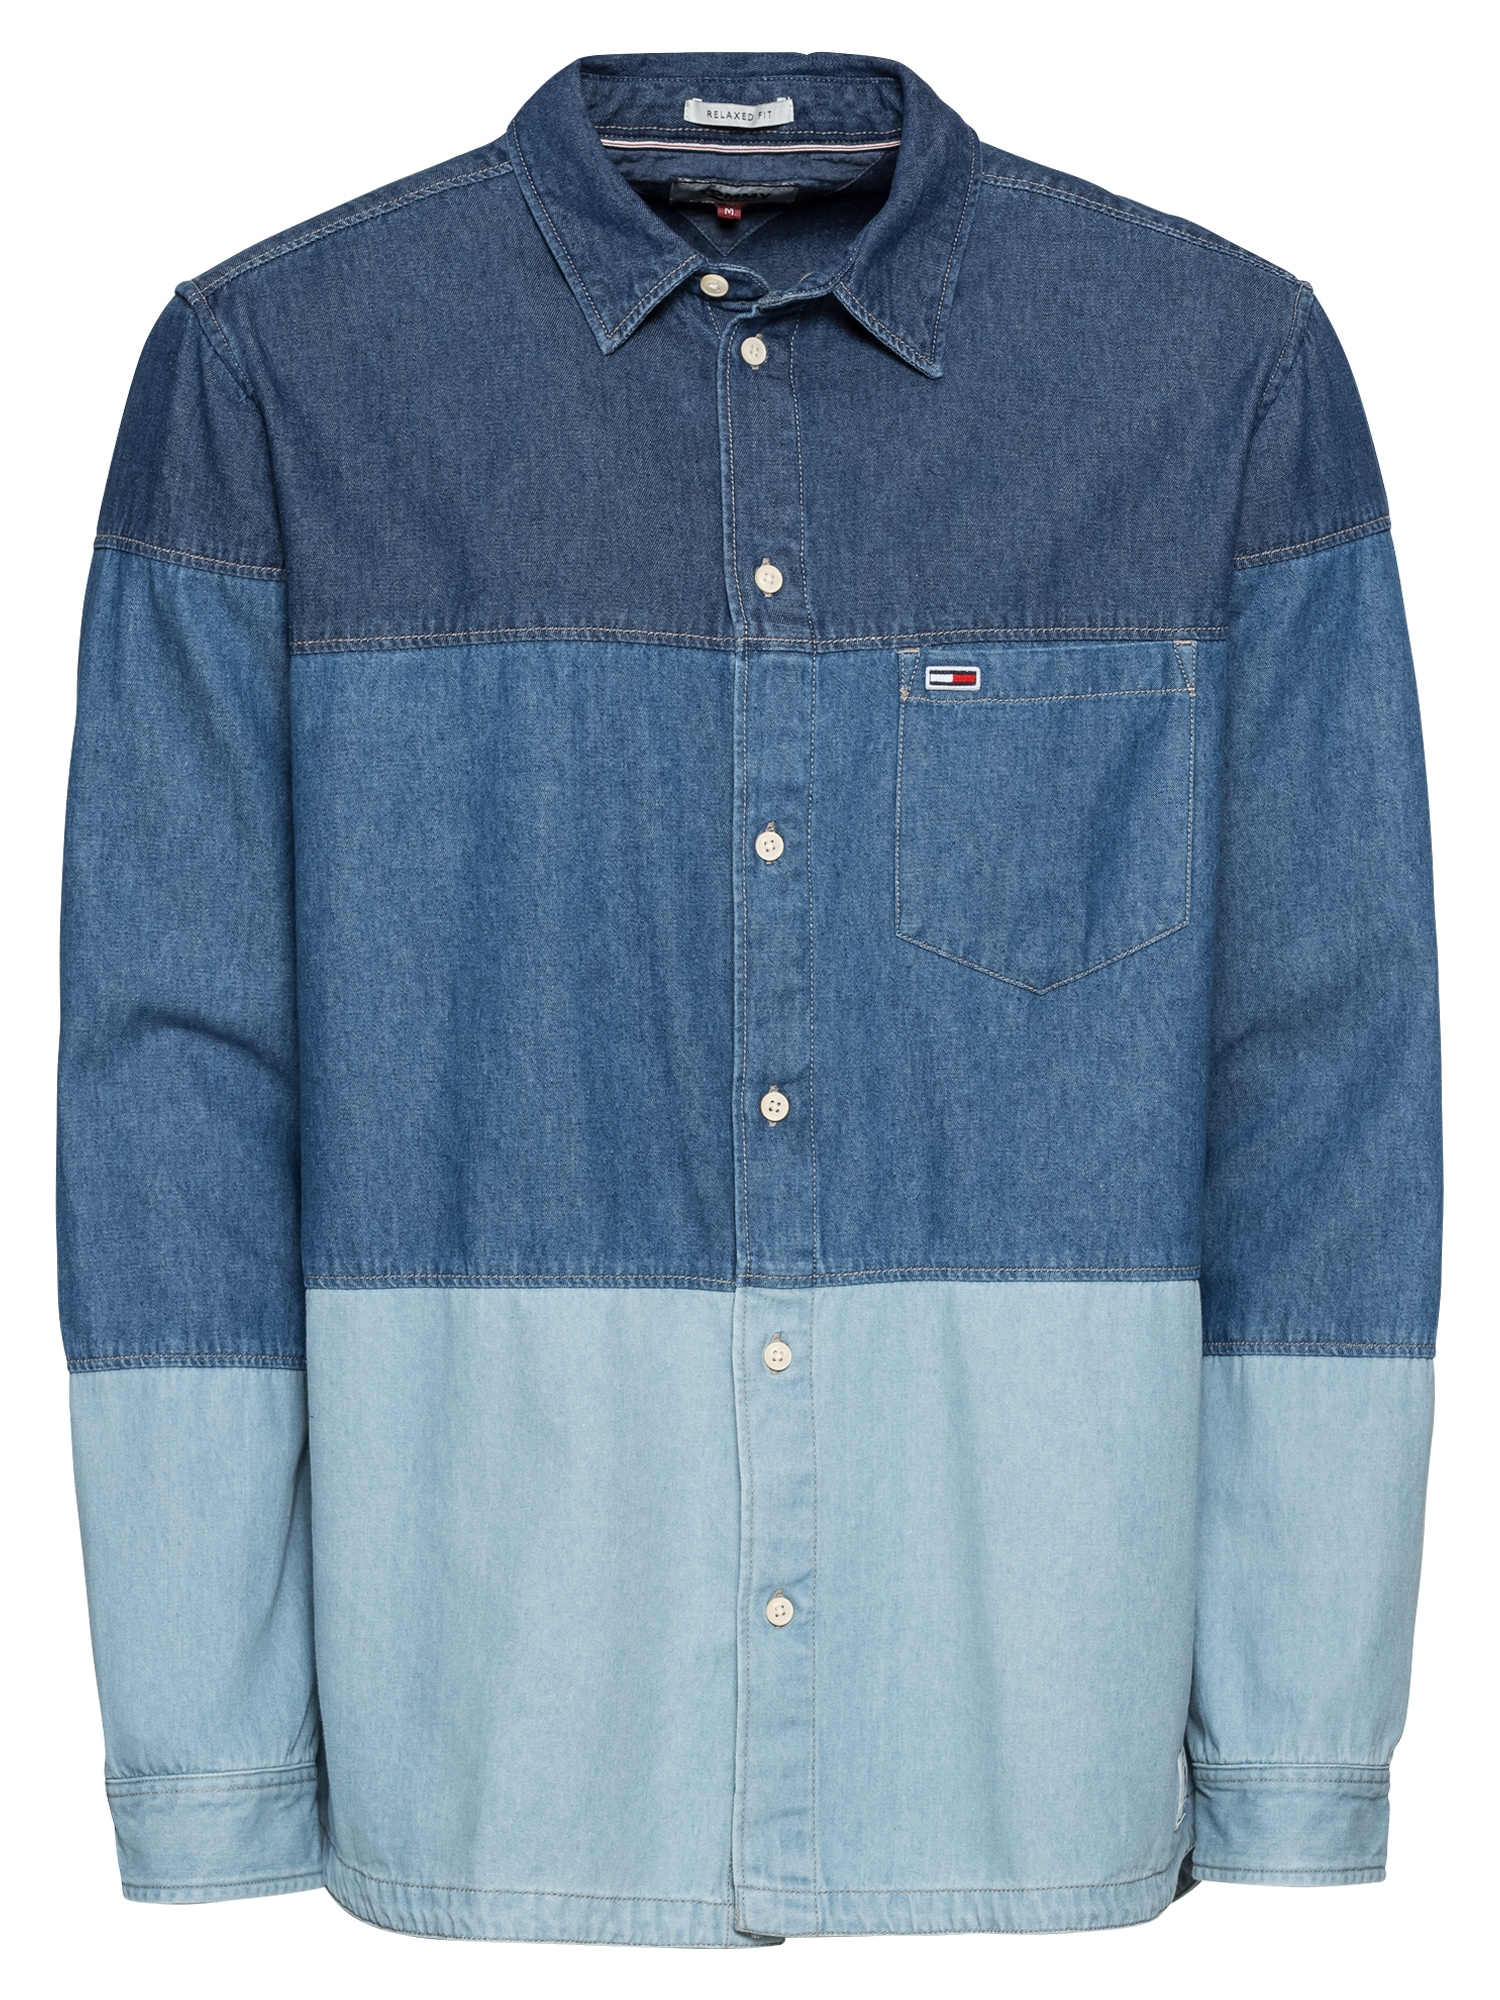 Košile TJM DENIM BLOCK SHIRT modrá Tommy Jeans